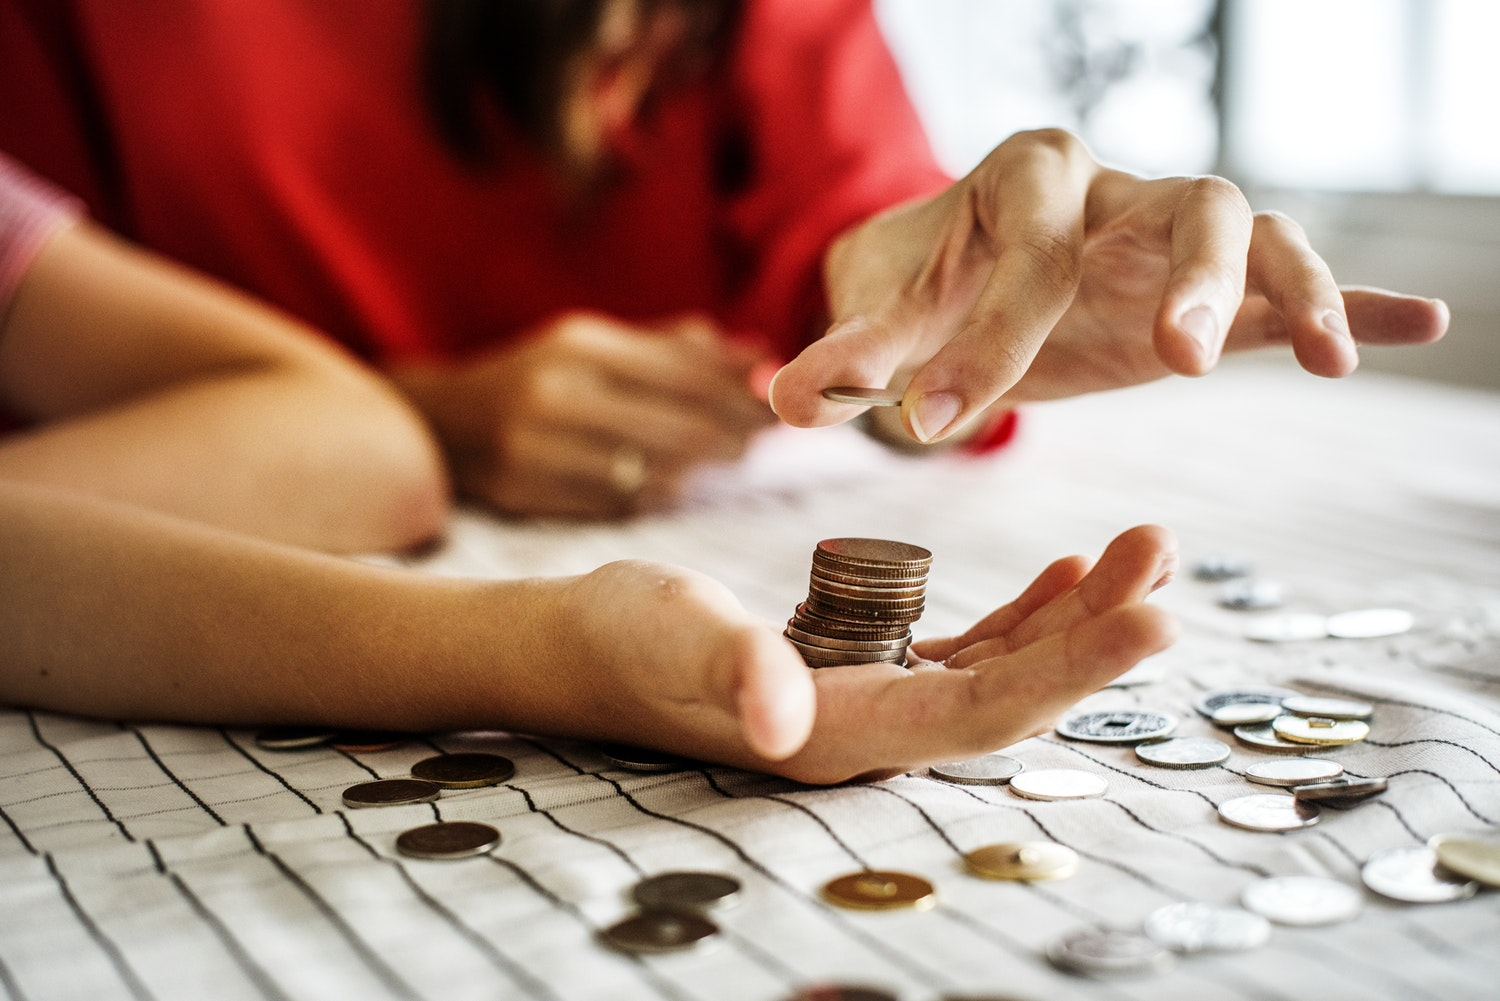 4 Ways to Reduce Financial Stress This Year